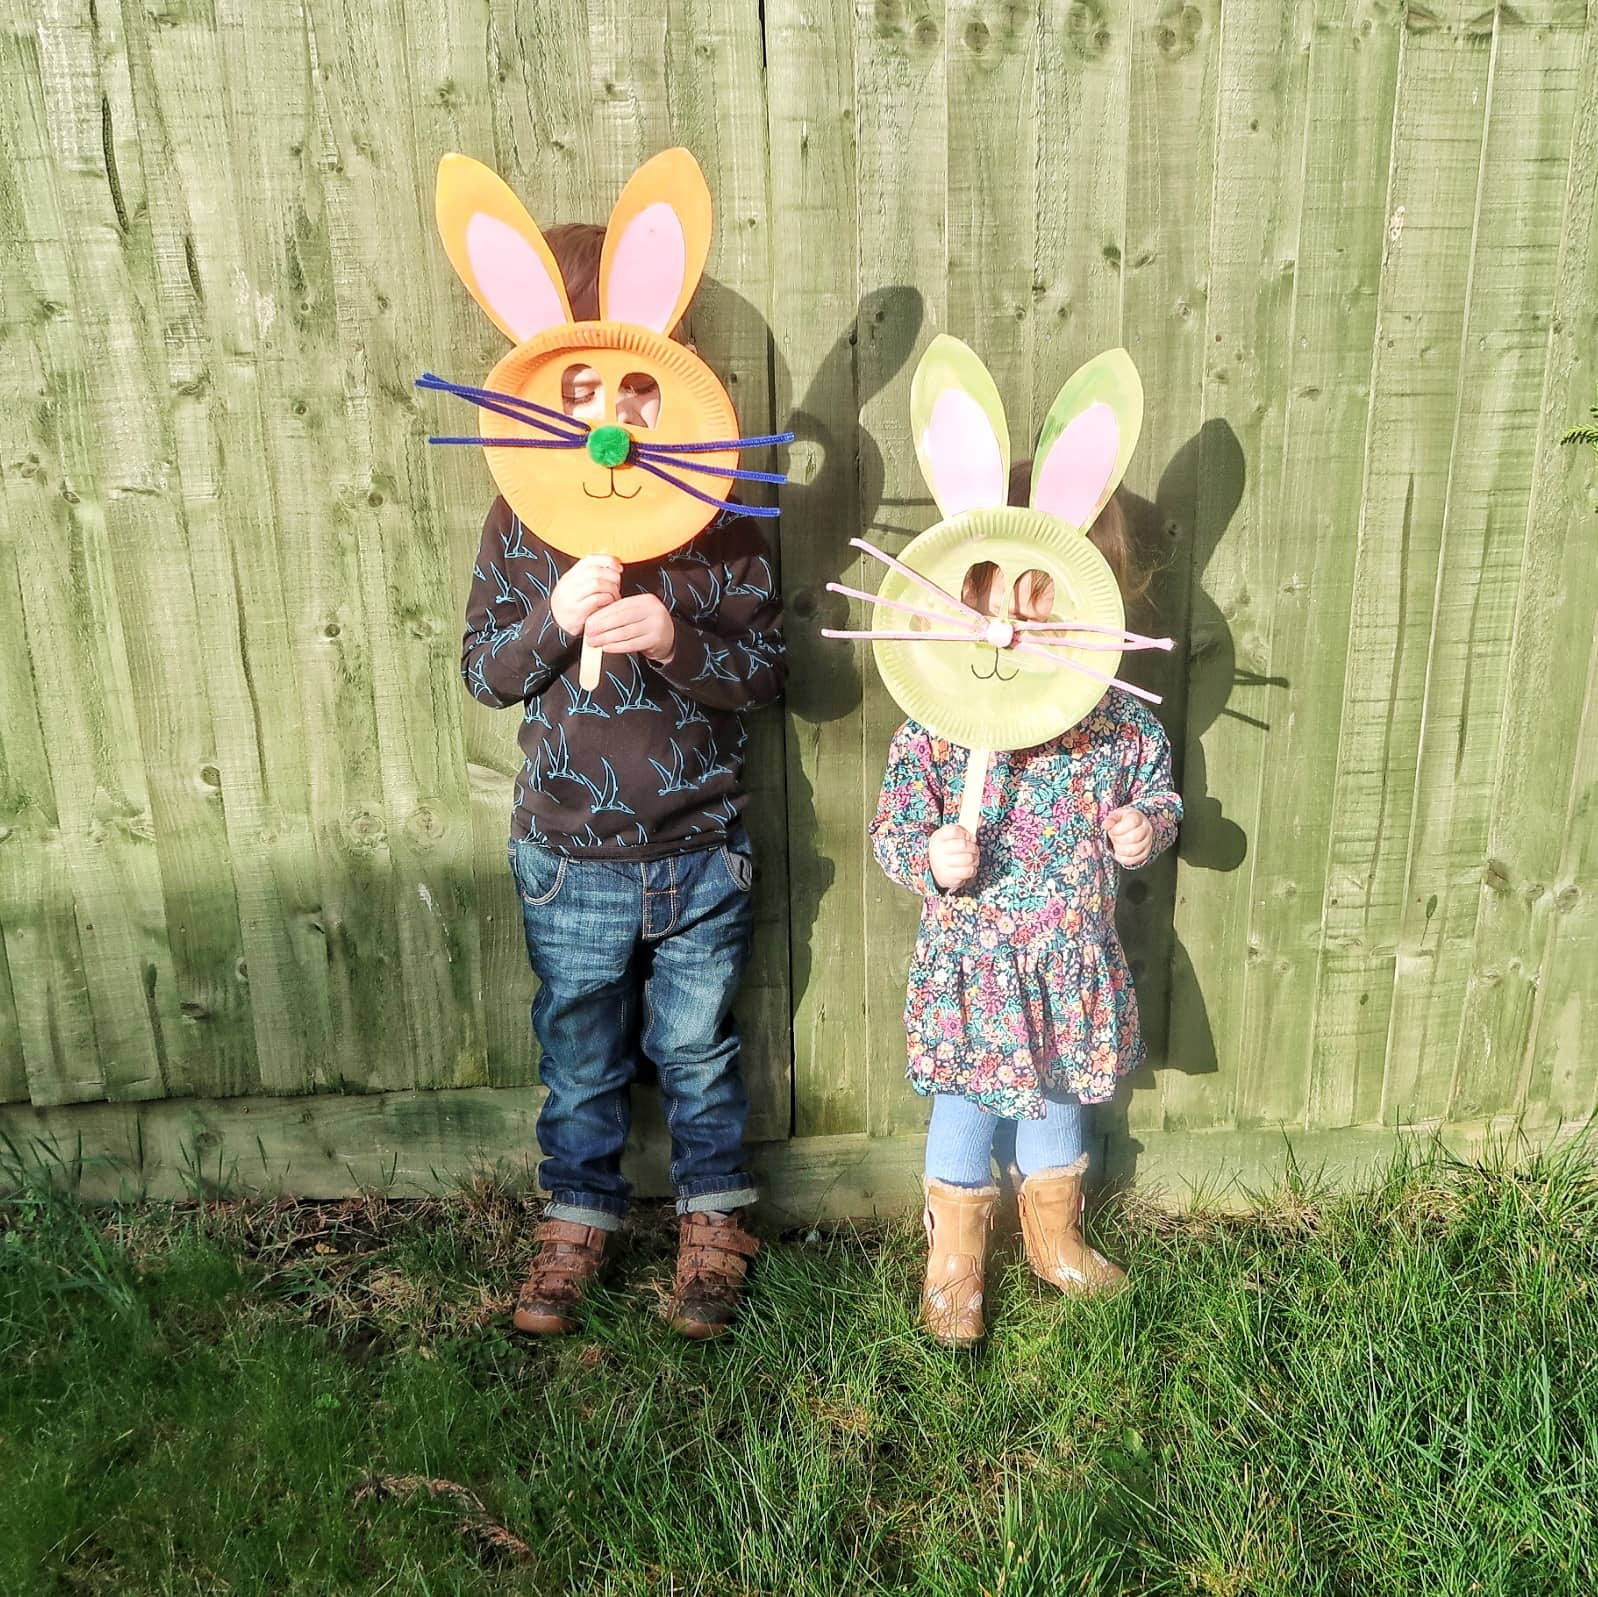 Biggest and Littlest with their bunny masks